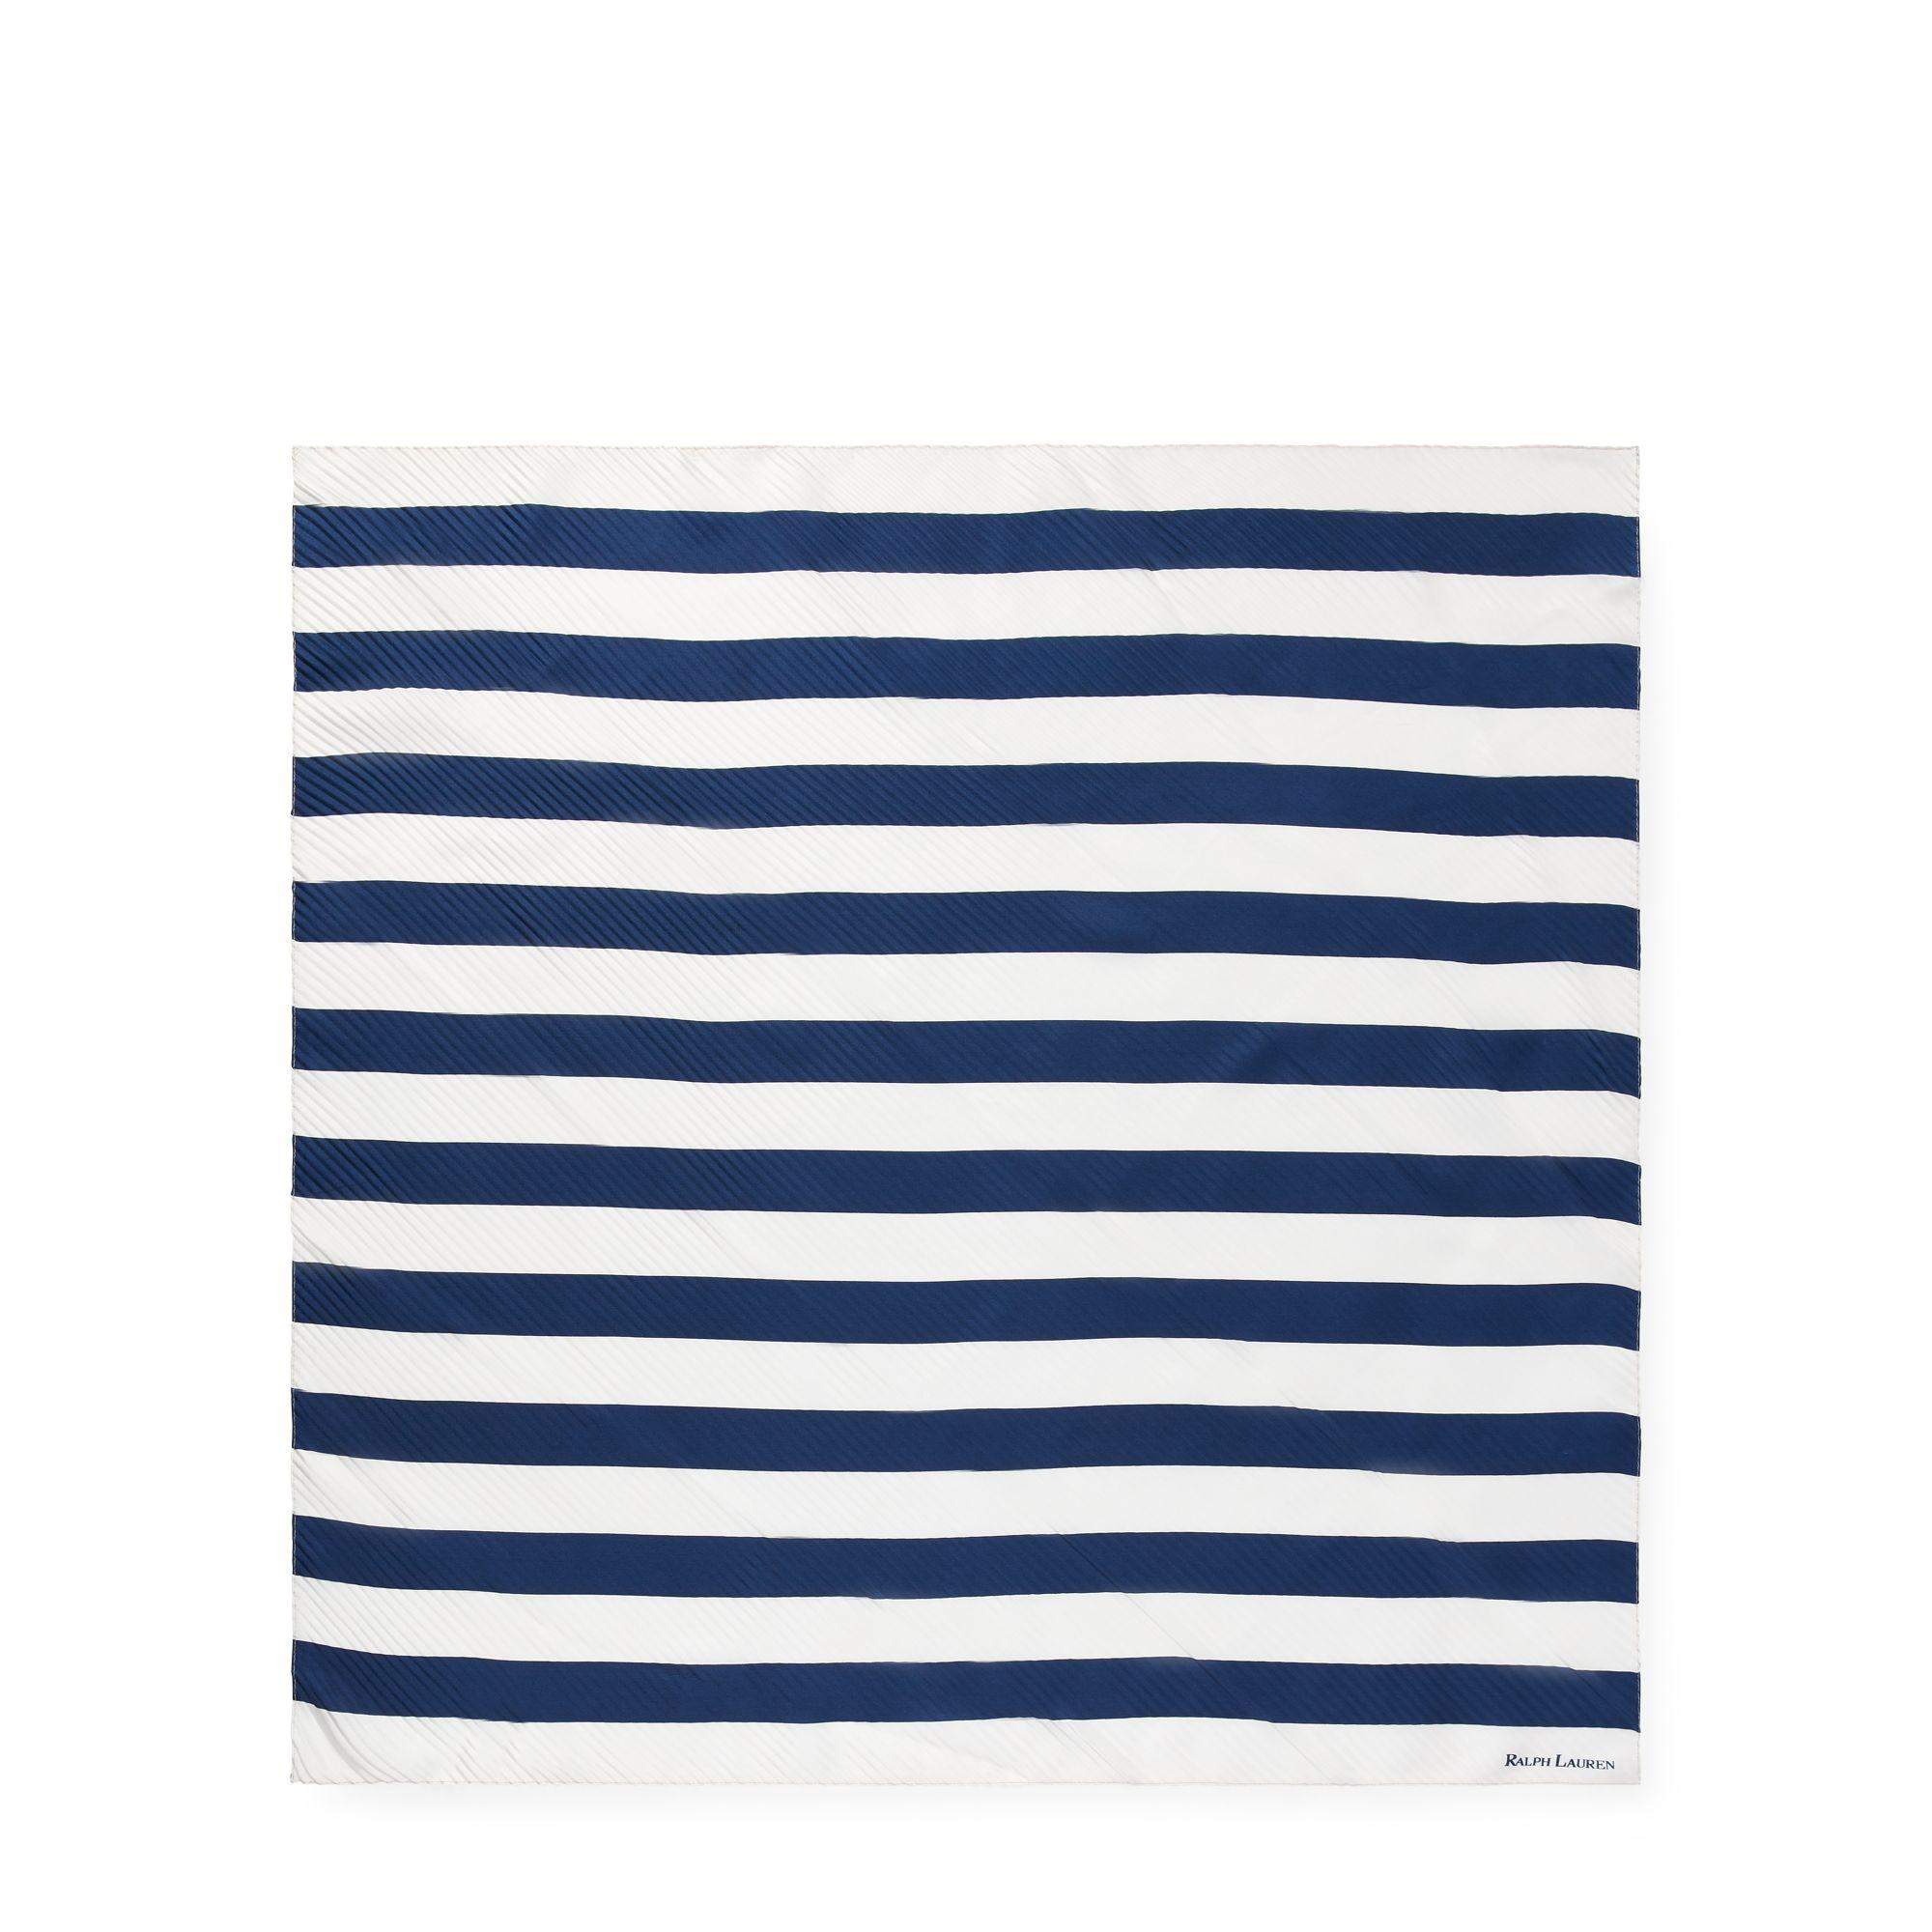 Polo Ralph Lauren - Blue Pleated Striped Silk Scarf - Lyst. View fullscreen 9c2e70bd4fb